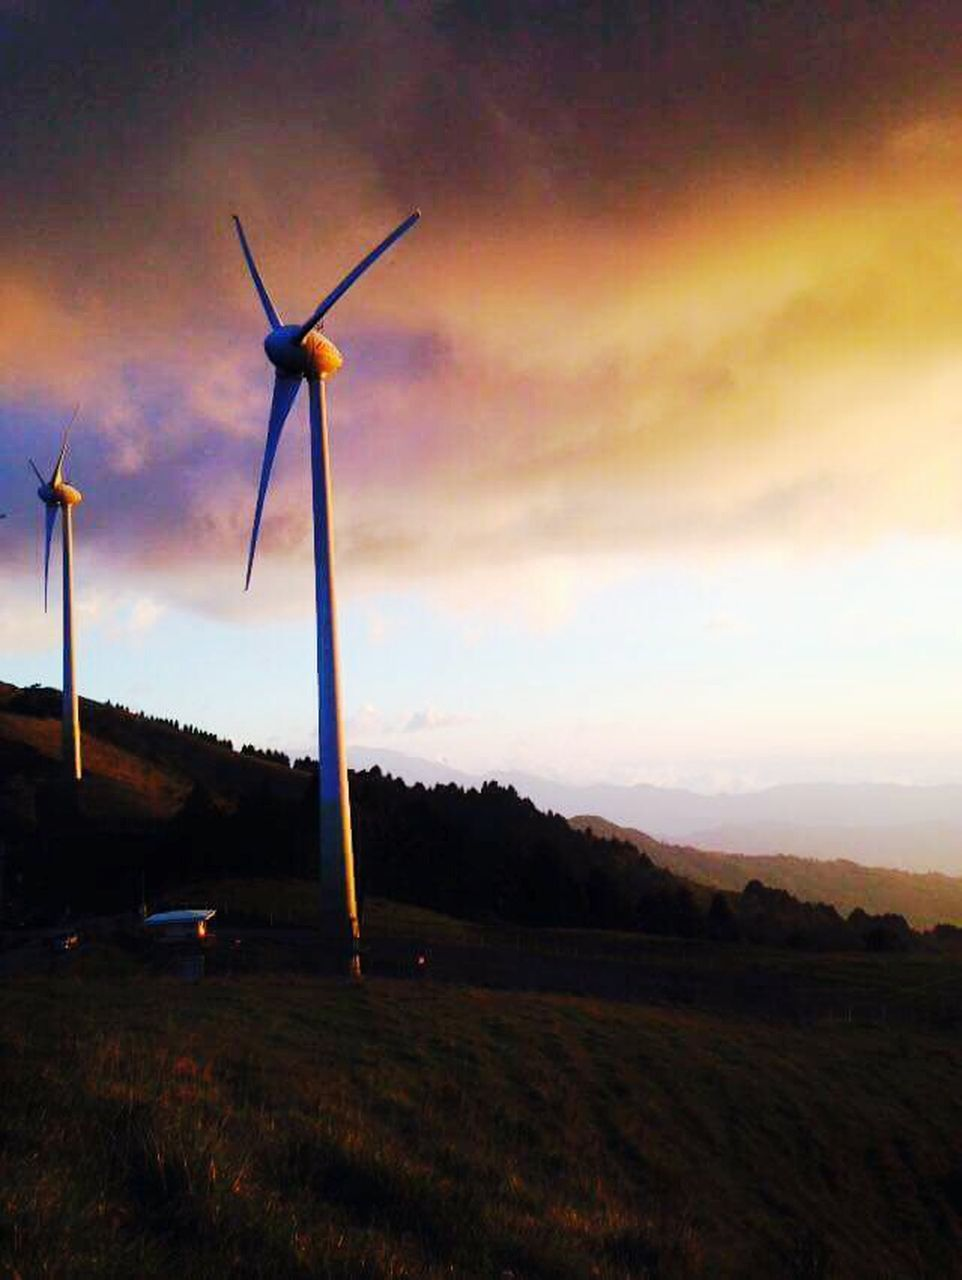 alternative energy, environmental conservation, wind power, wind turbine, fuel and power generation, renewable energy, windmill, sunset, industrial windmill, outdoors, nature, cloud - sky, sky, no people, field, tranquility, grass, technology, beauty in nature, scenics, landscape, rural scene, day